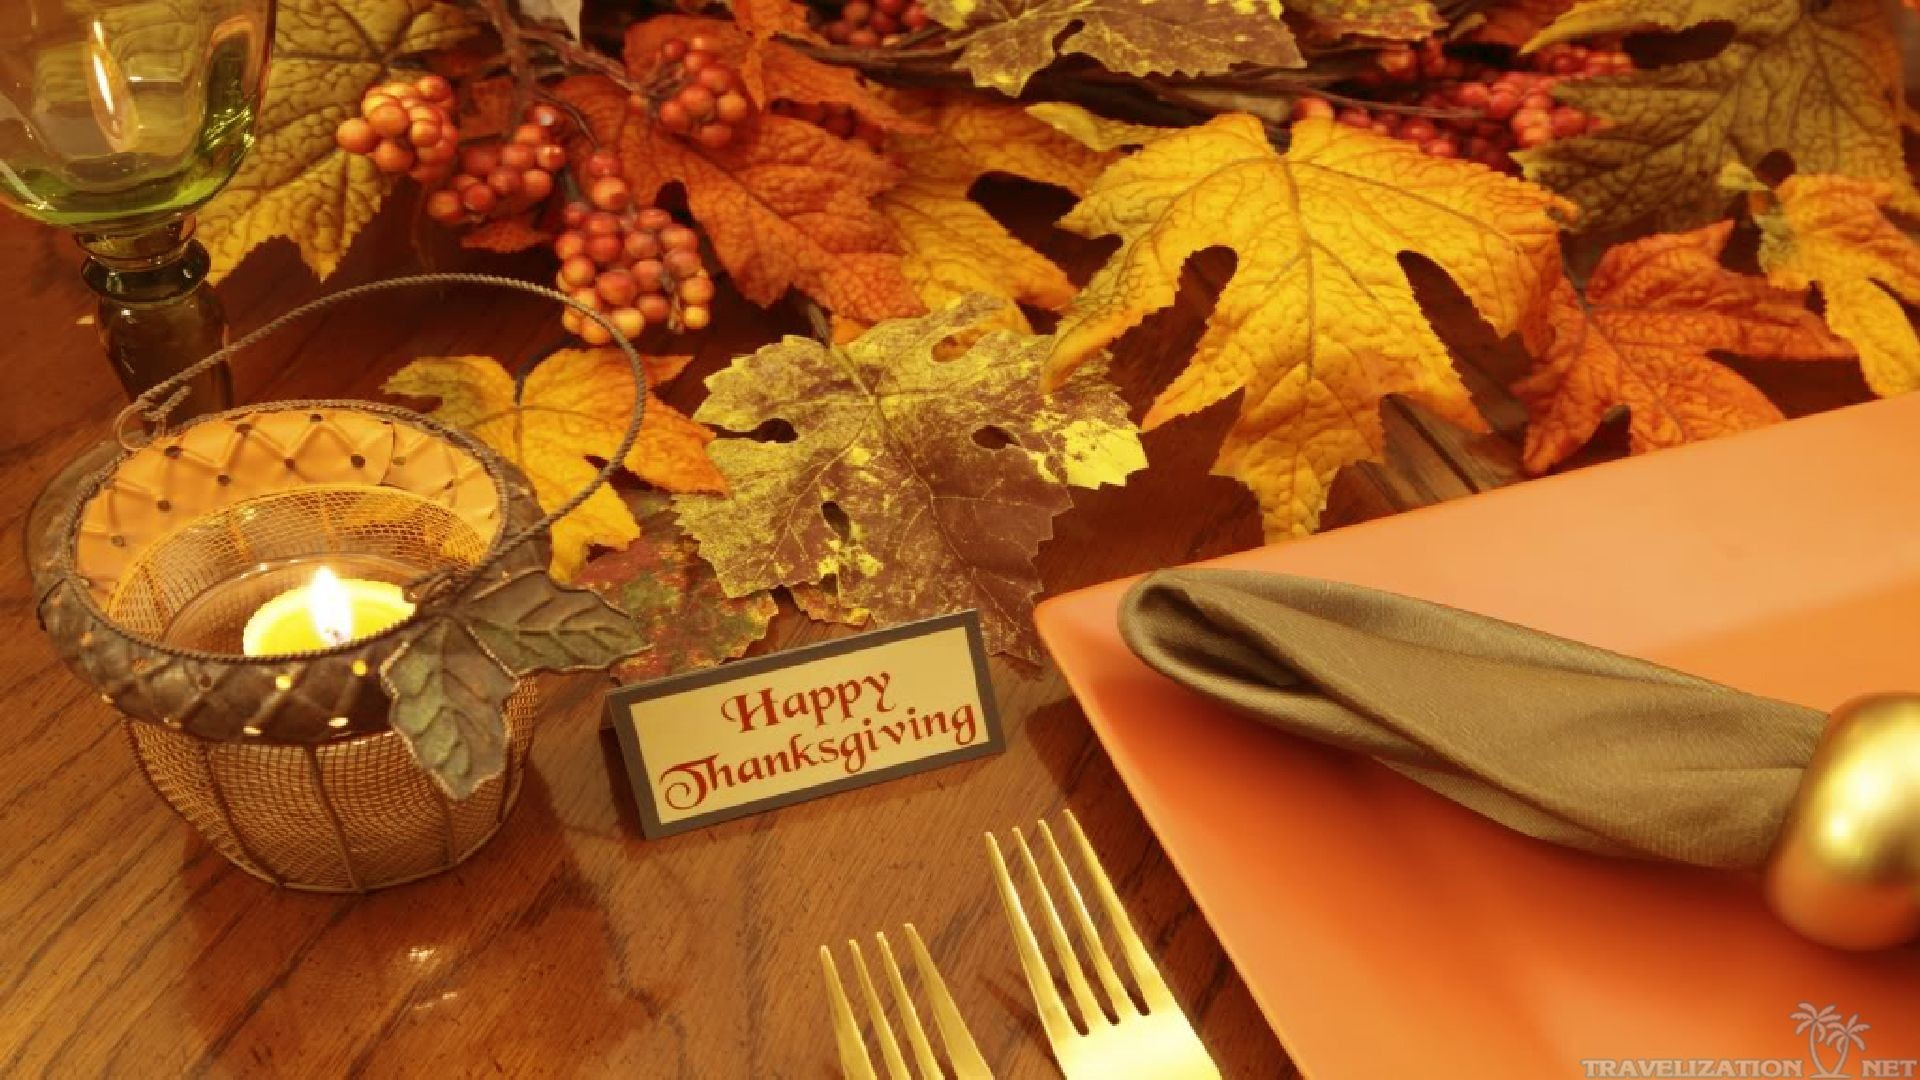 … 2560×1920. Beautiful Thanksgiving Day Wreath Wallpapers